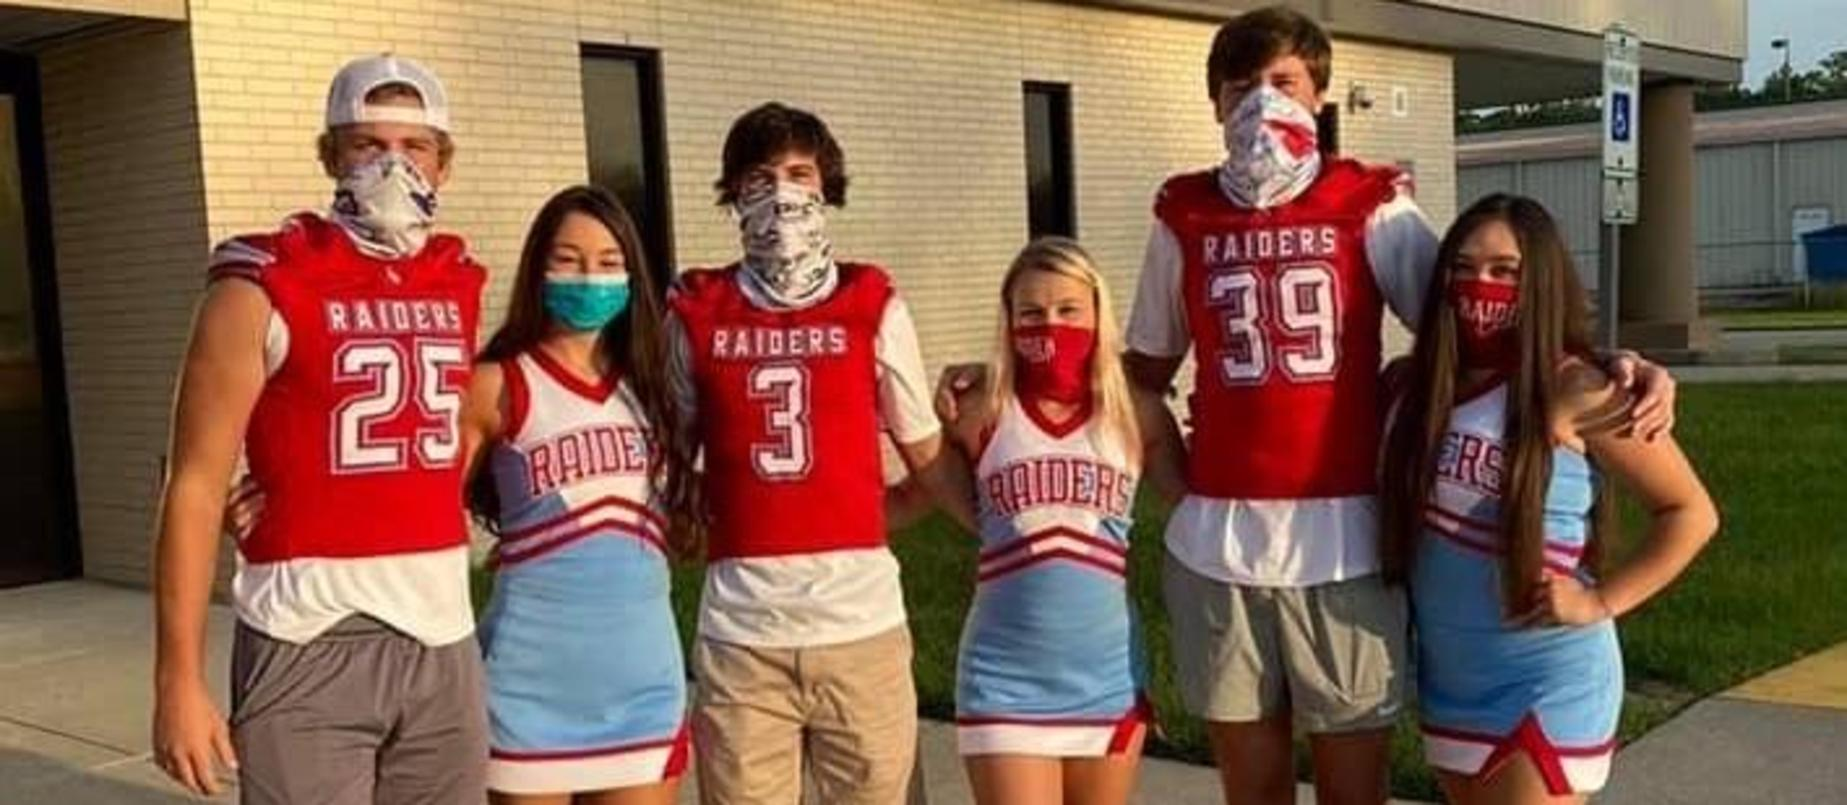 Lumberton High School Football and Cheer Students Greet Our Little Raiders